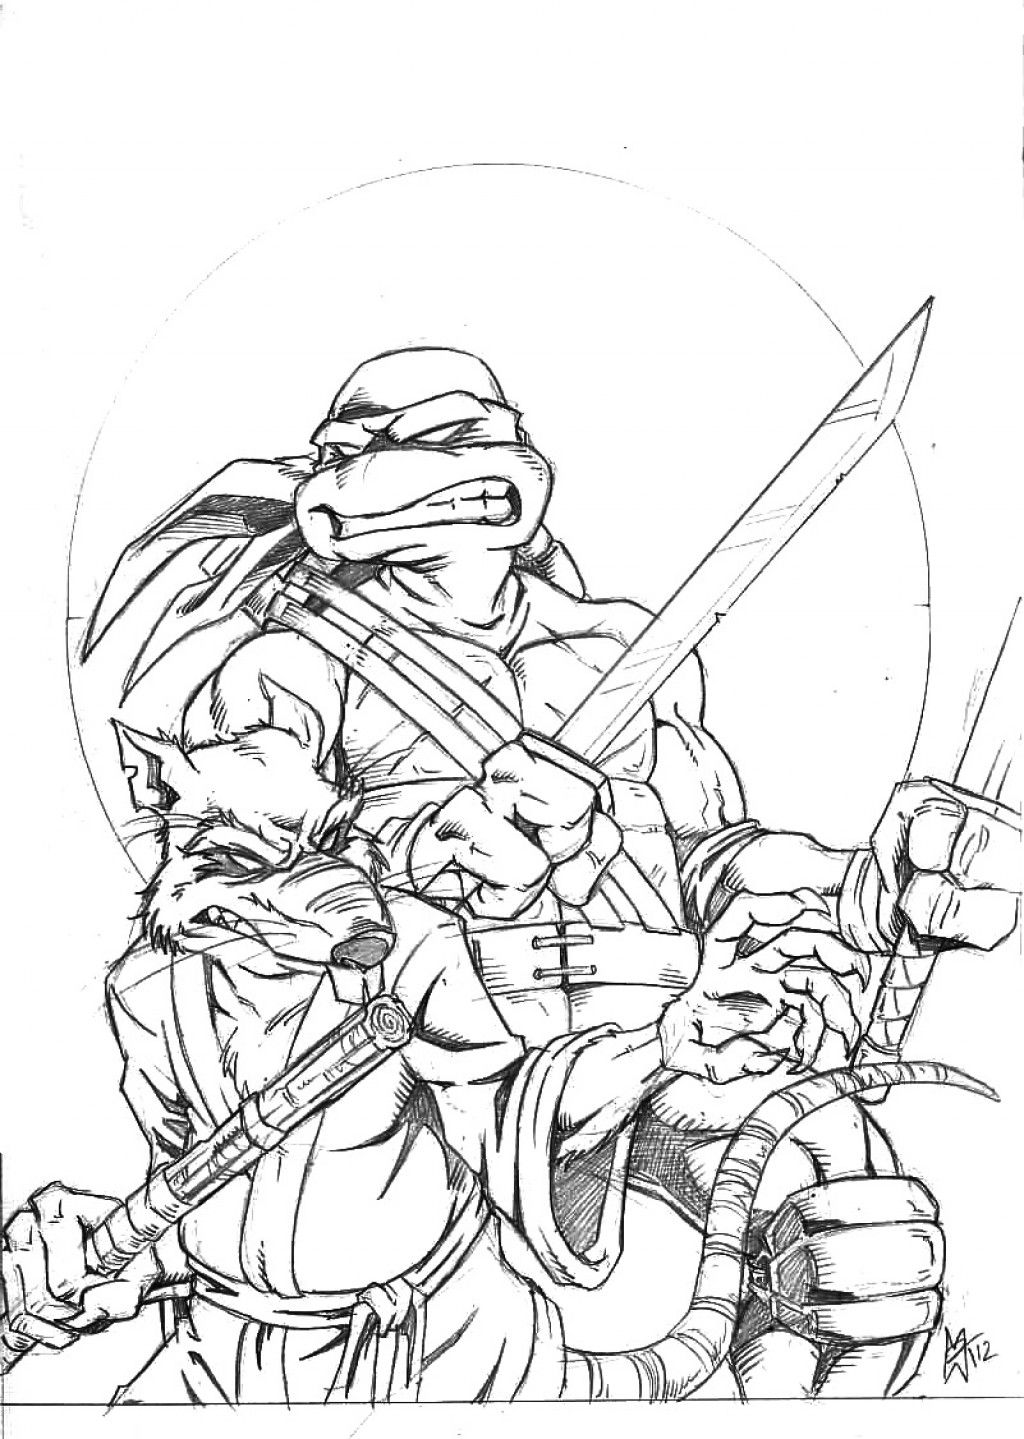 Mutant Ninja Turtles Printable Coloring Pages